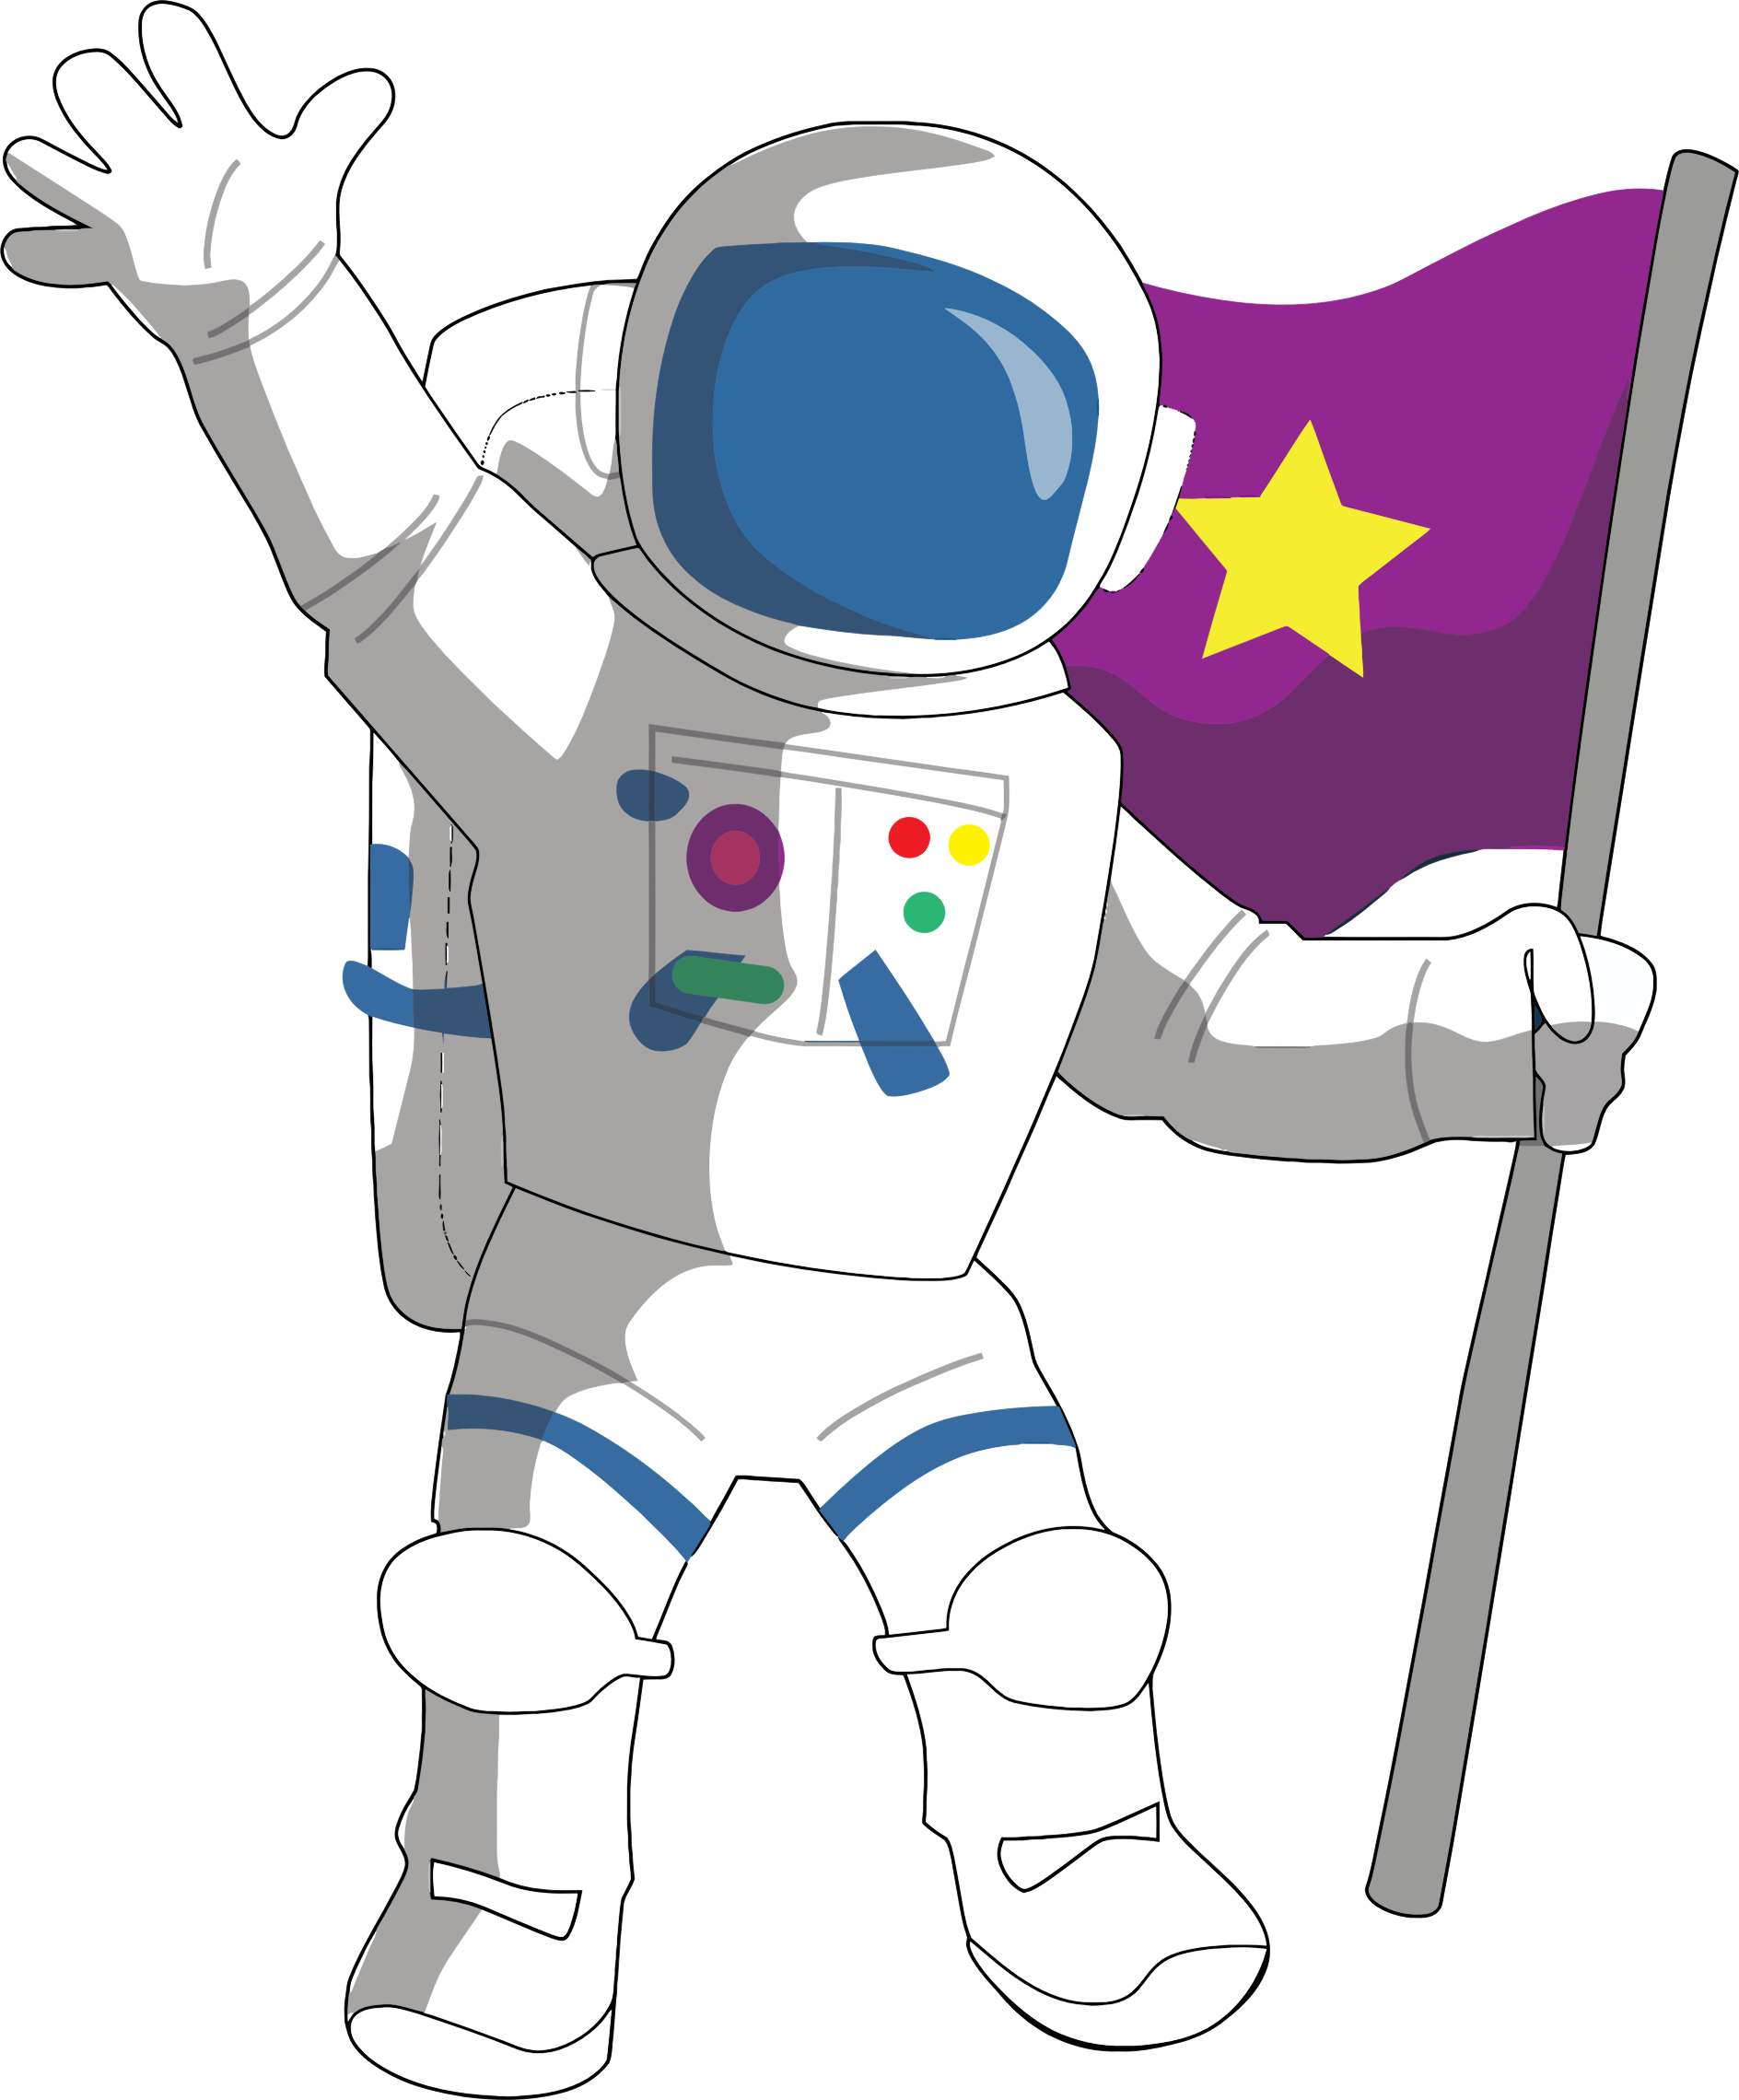 Person clipart technology. Astronaut png images free